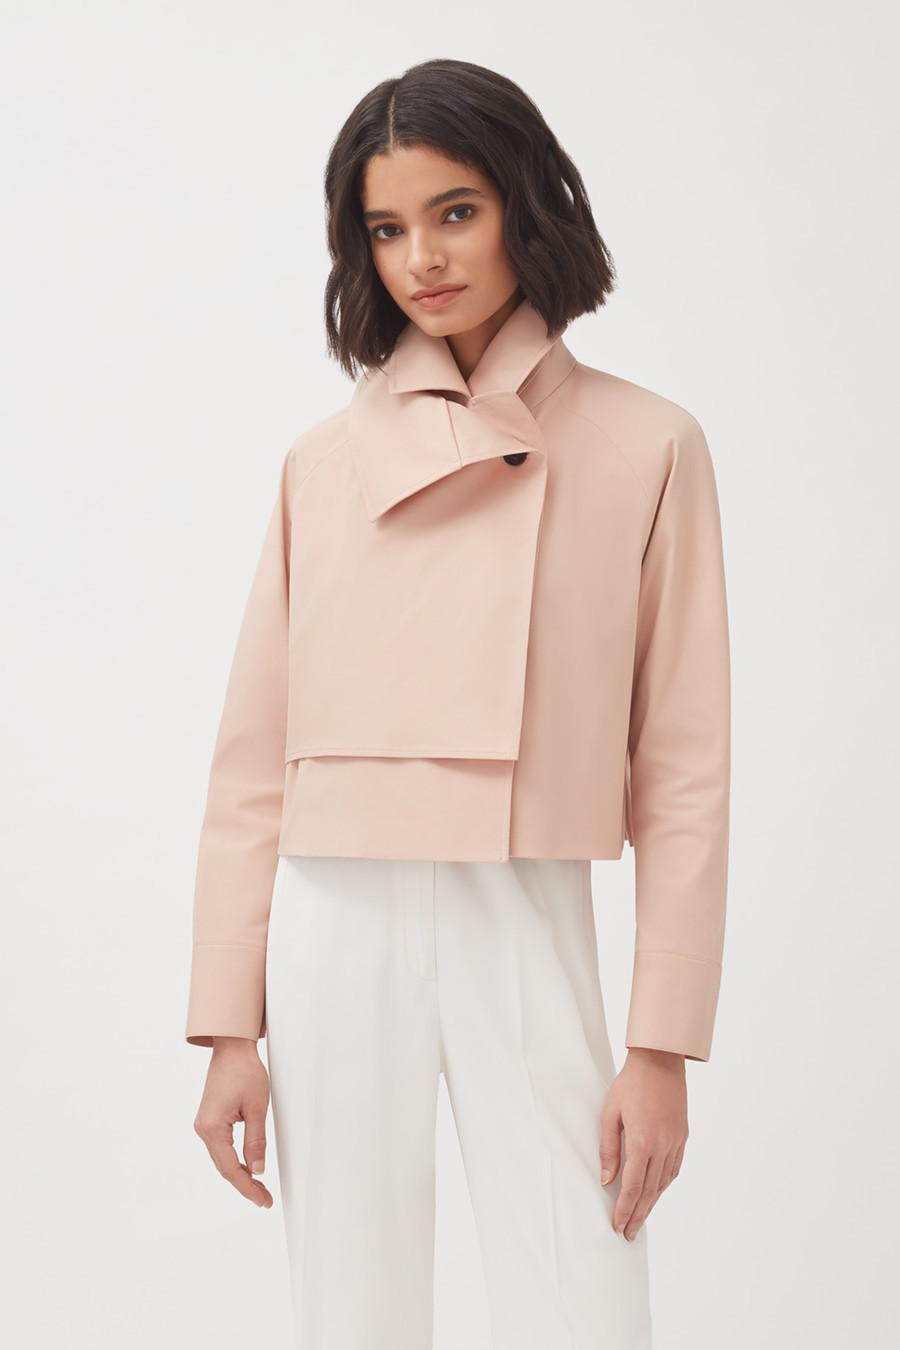 Women's Cropped Trench in Soft Rose | Size: S/M | Cotton Elastane Blend by Cuyana 2